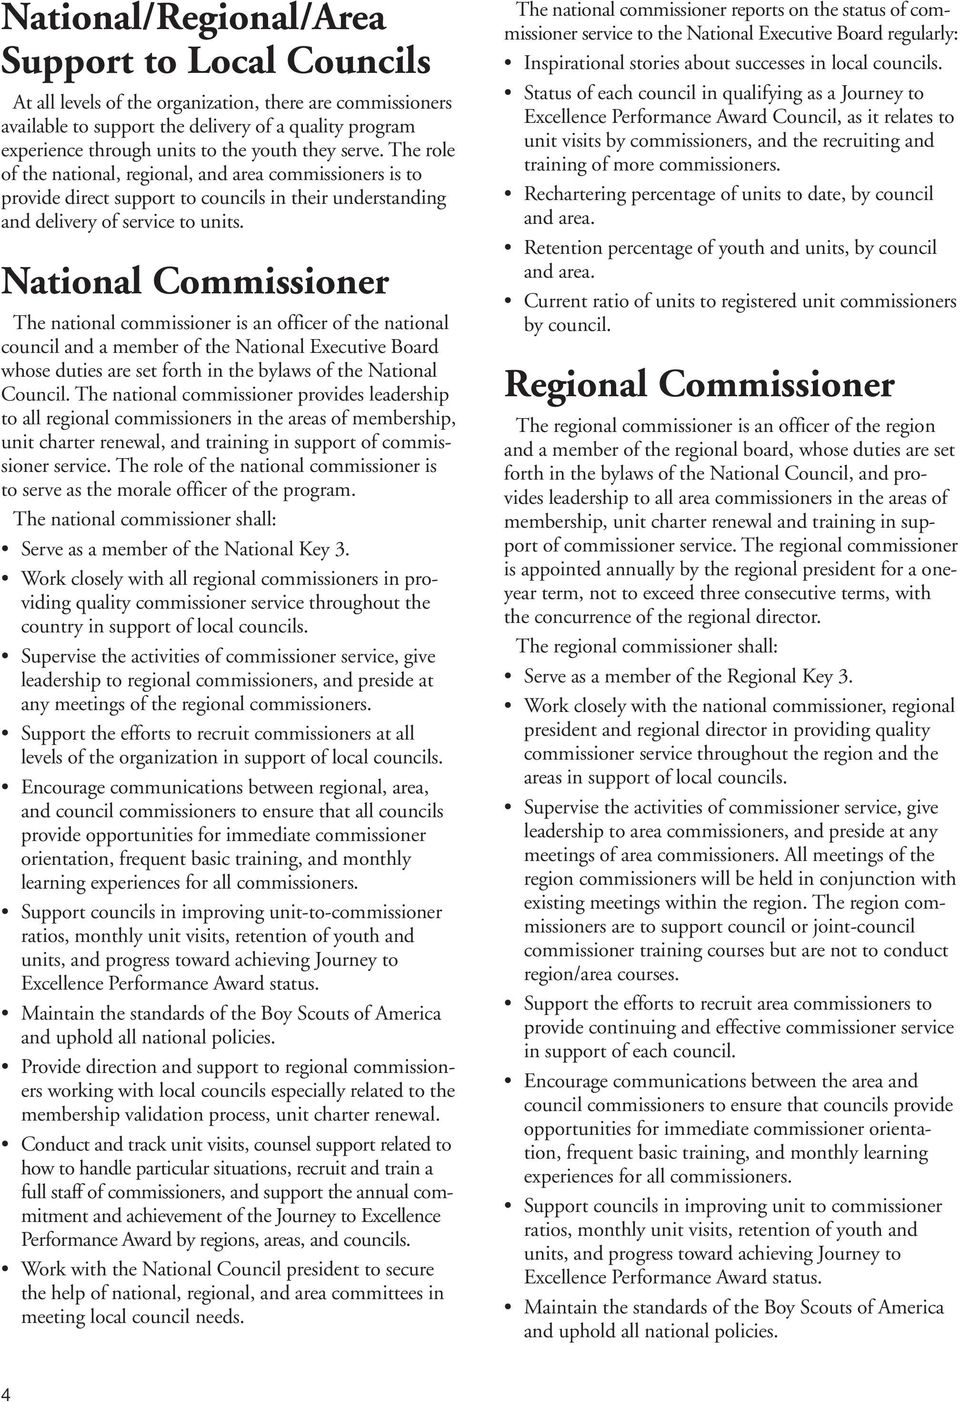 National Commissioner The national commissioner is an officer of the national council and a member of the National Executive Board whose duties are set forth in the bylaws of the National Council.